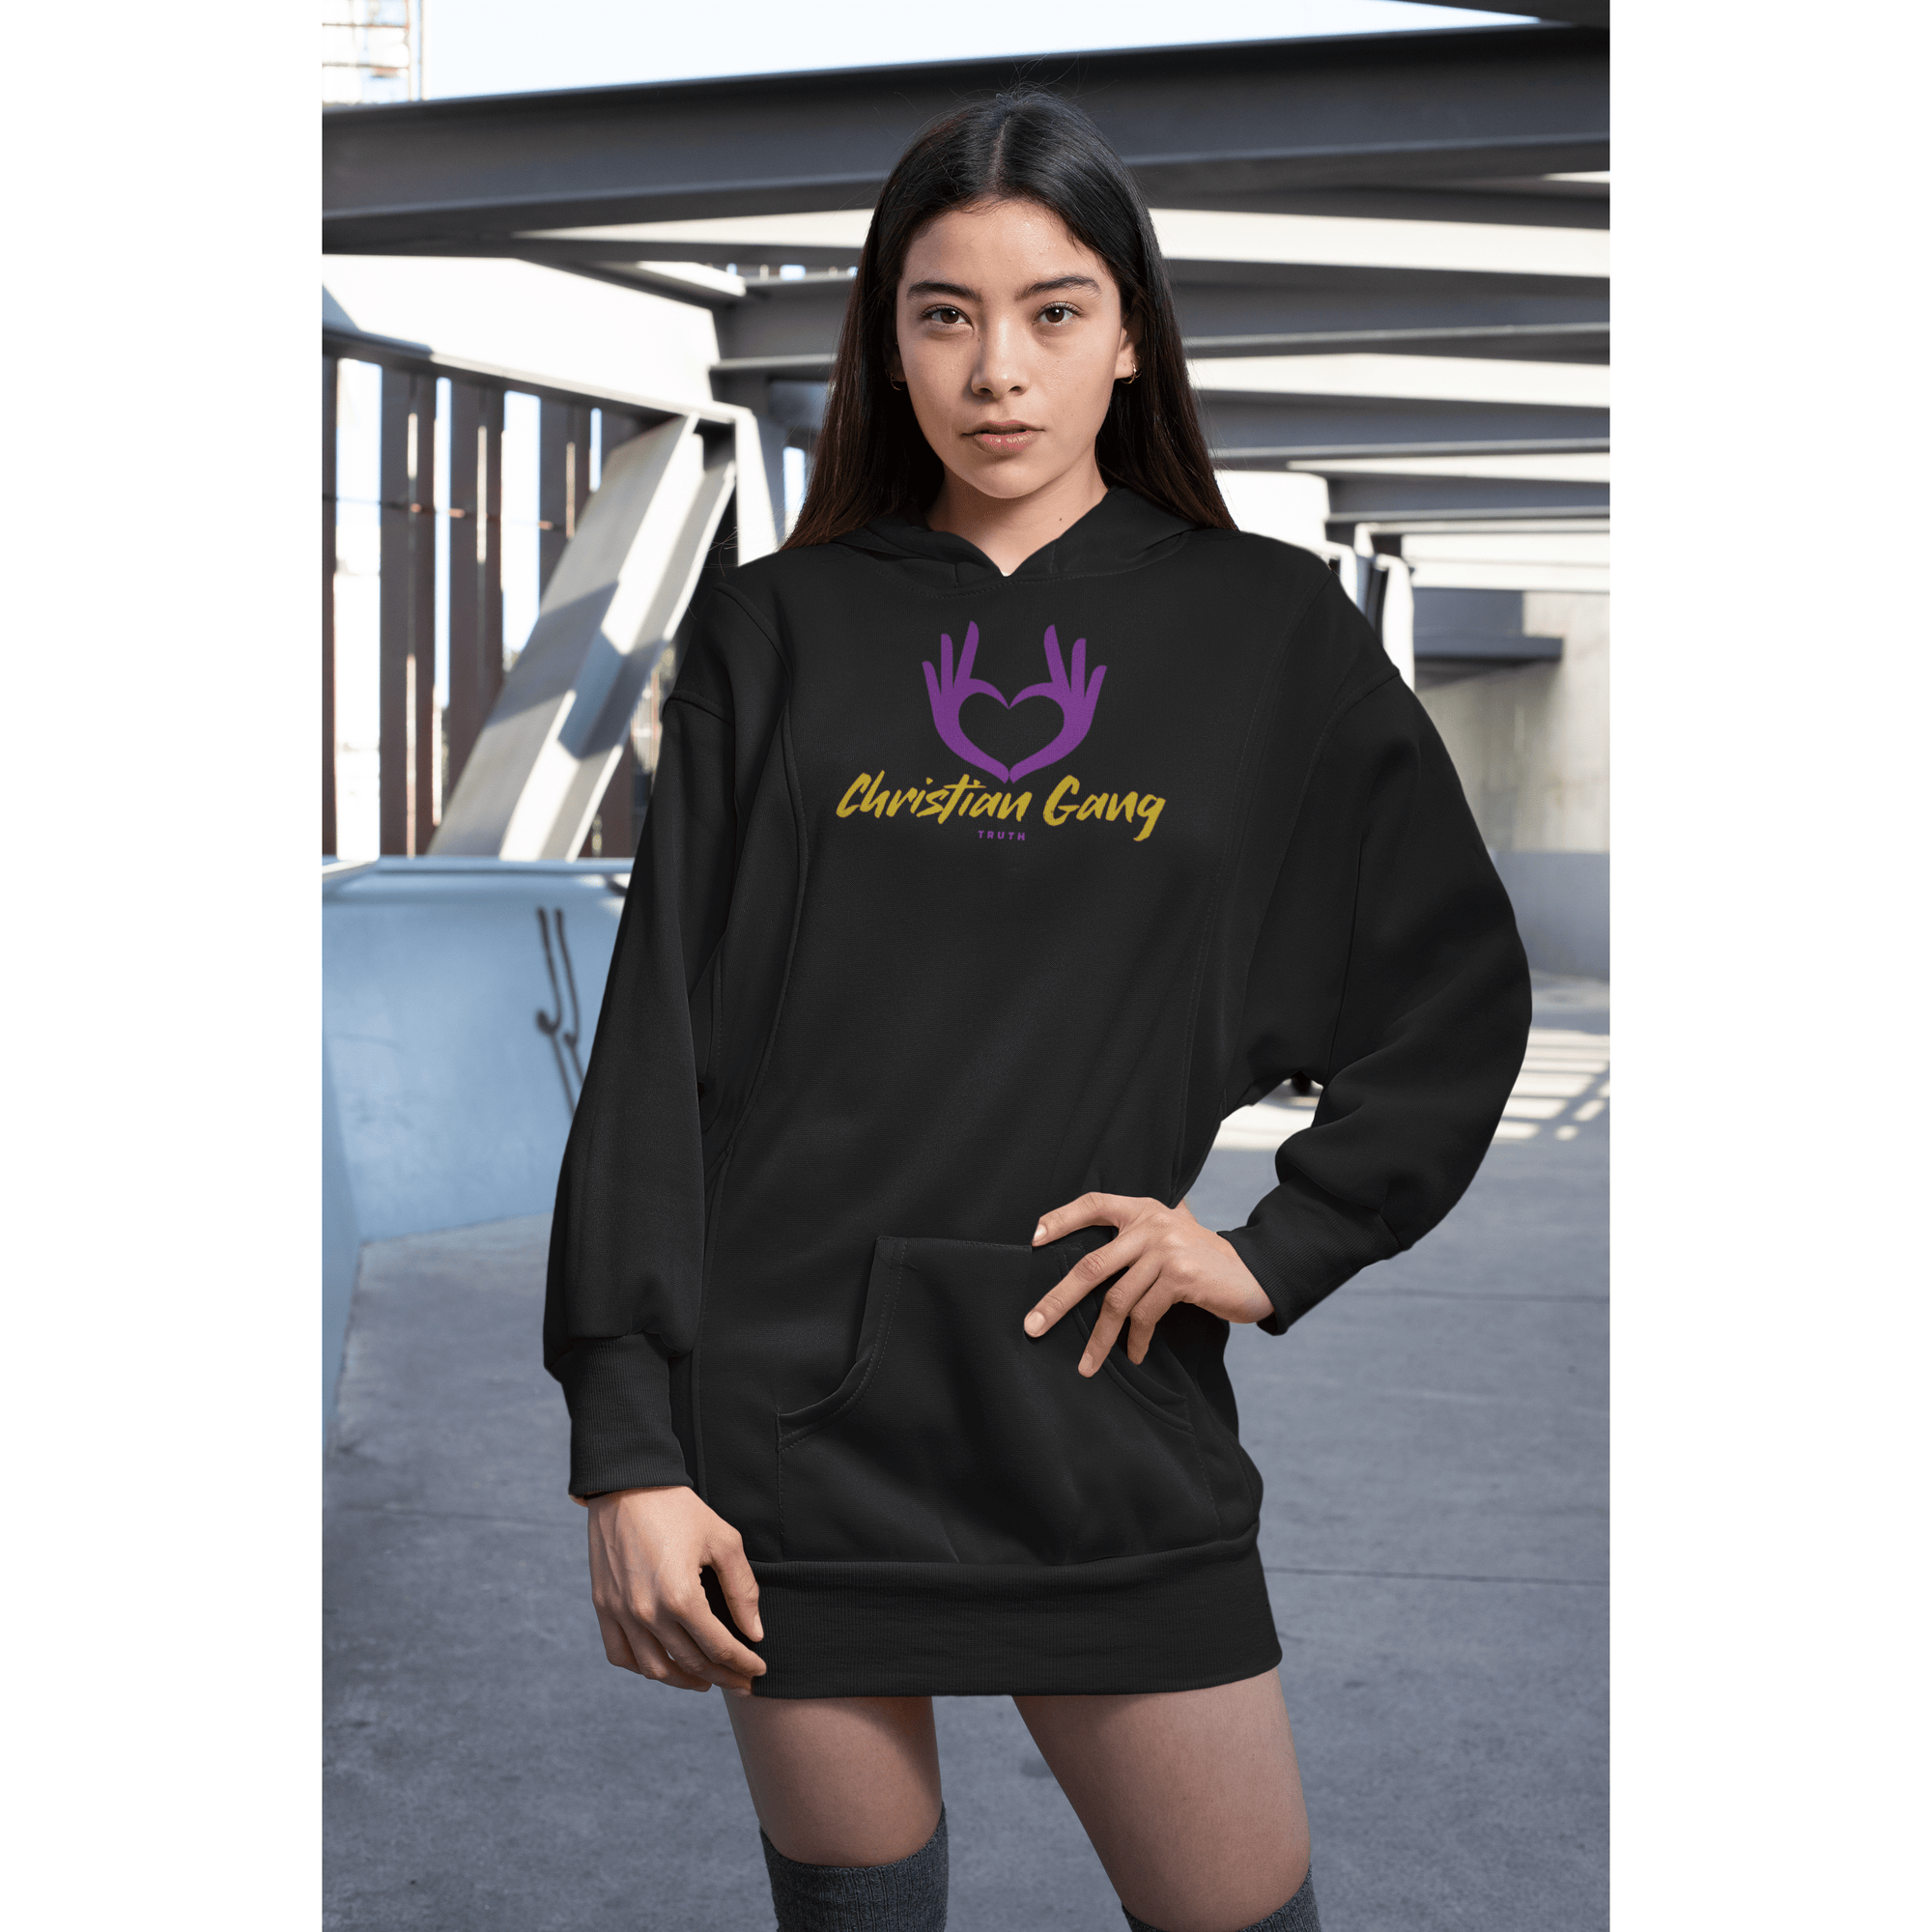 """Christian Gang"" Pullover Hoodie - TRUTH Christian Boutique"